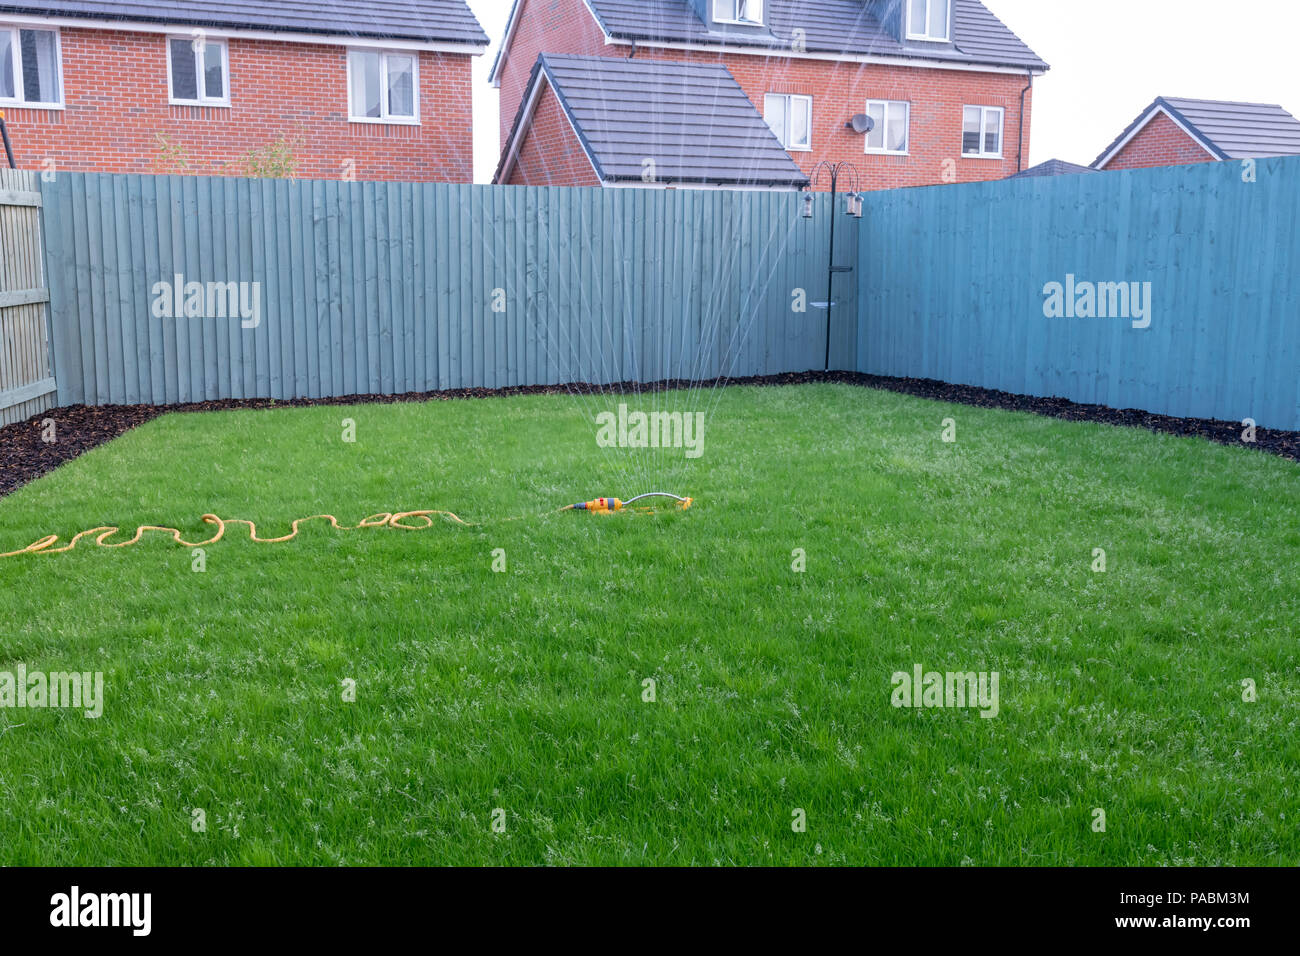 Sprinkler attached to a yellow hose being used to water a newly laid grass lawn on a new housing development - Stock Image